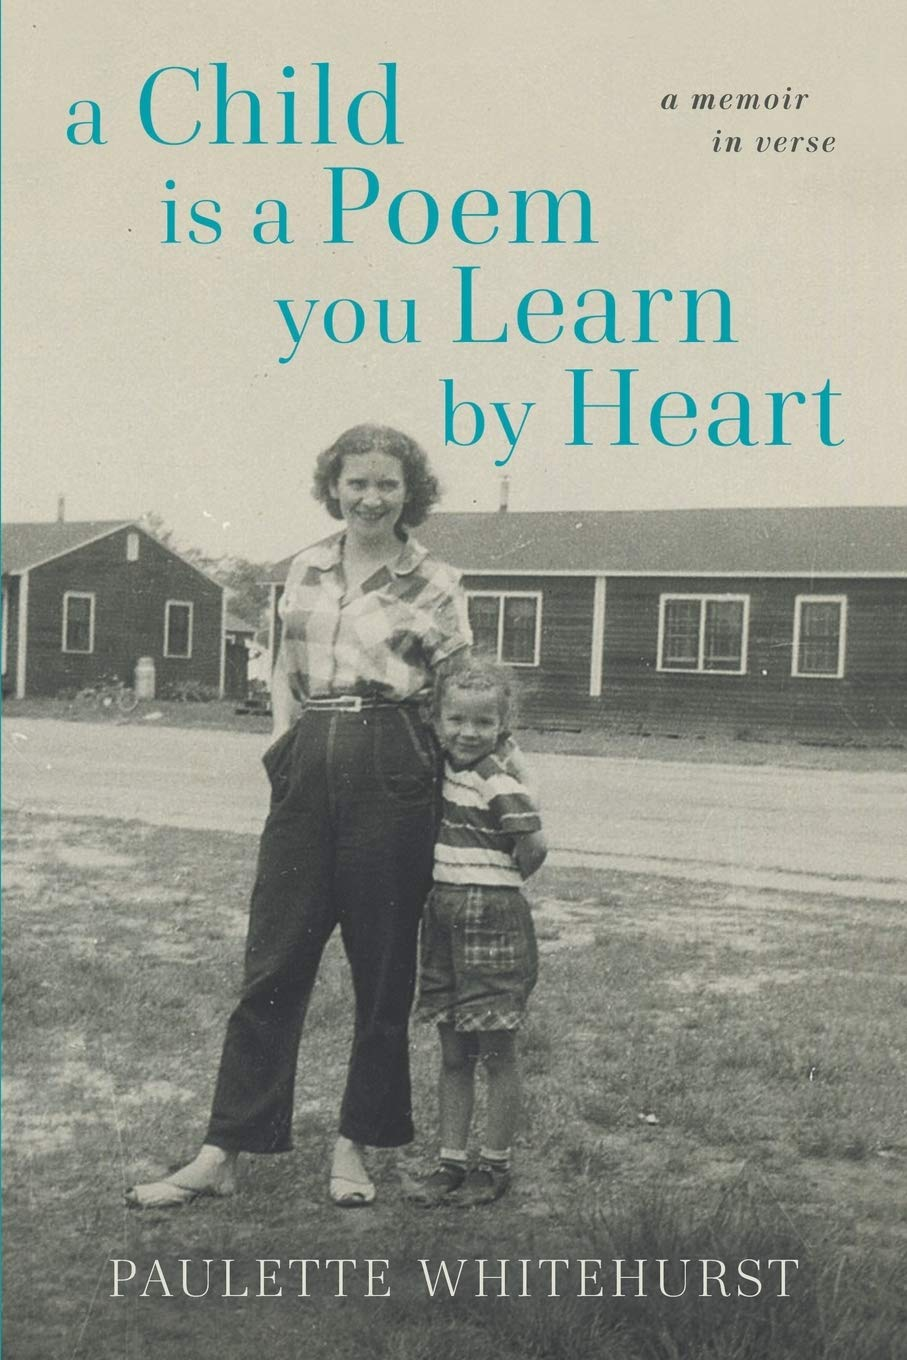 Read my mind - young children, poetry, and learning